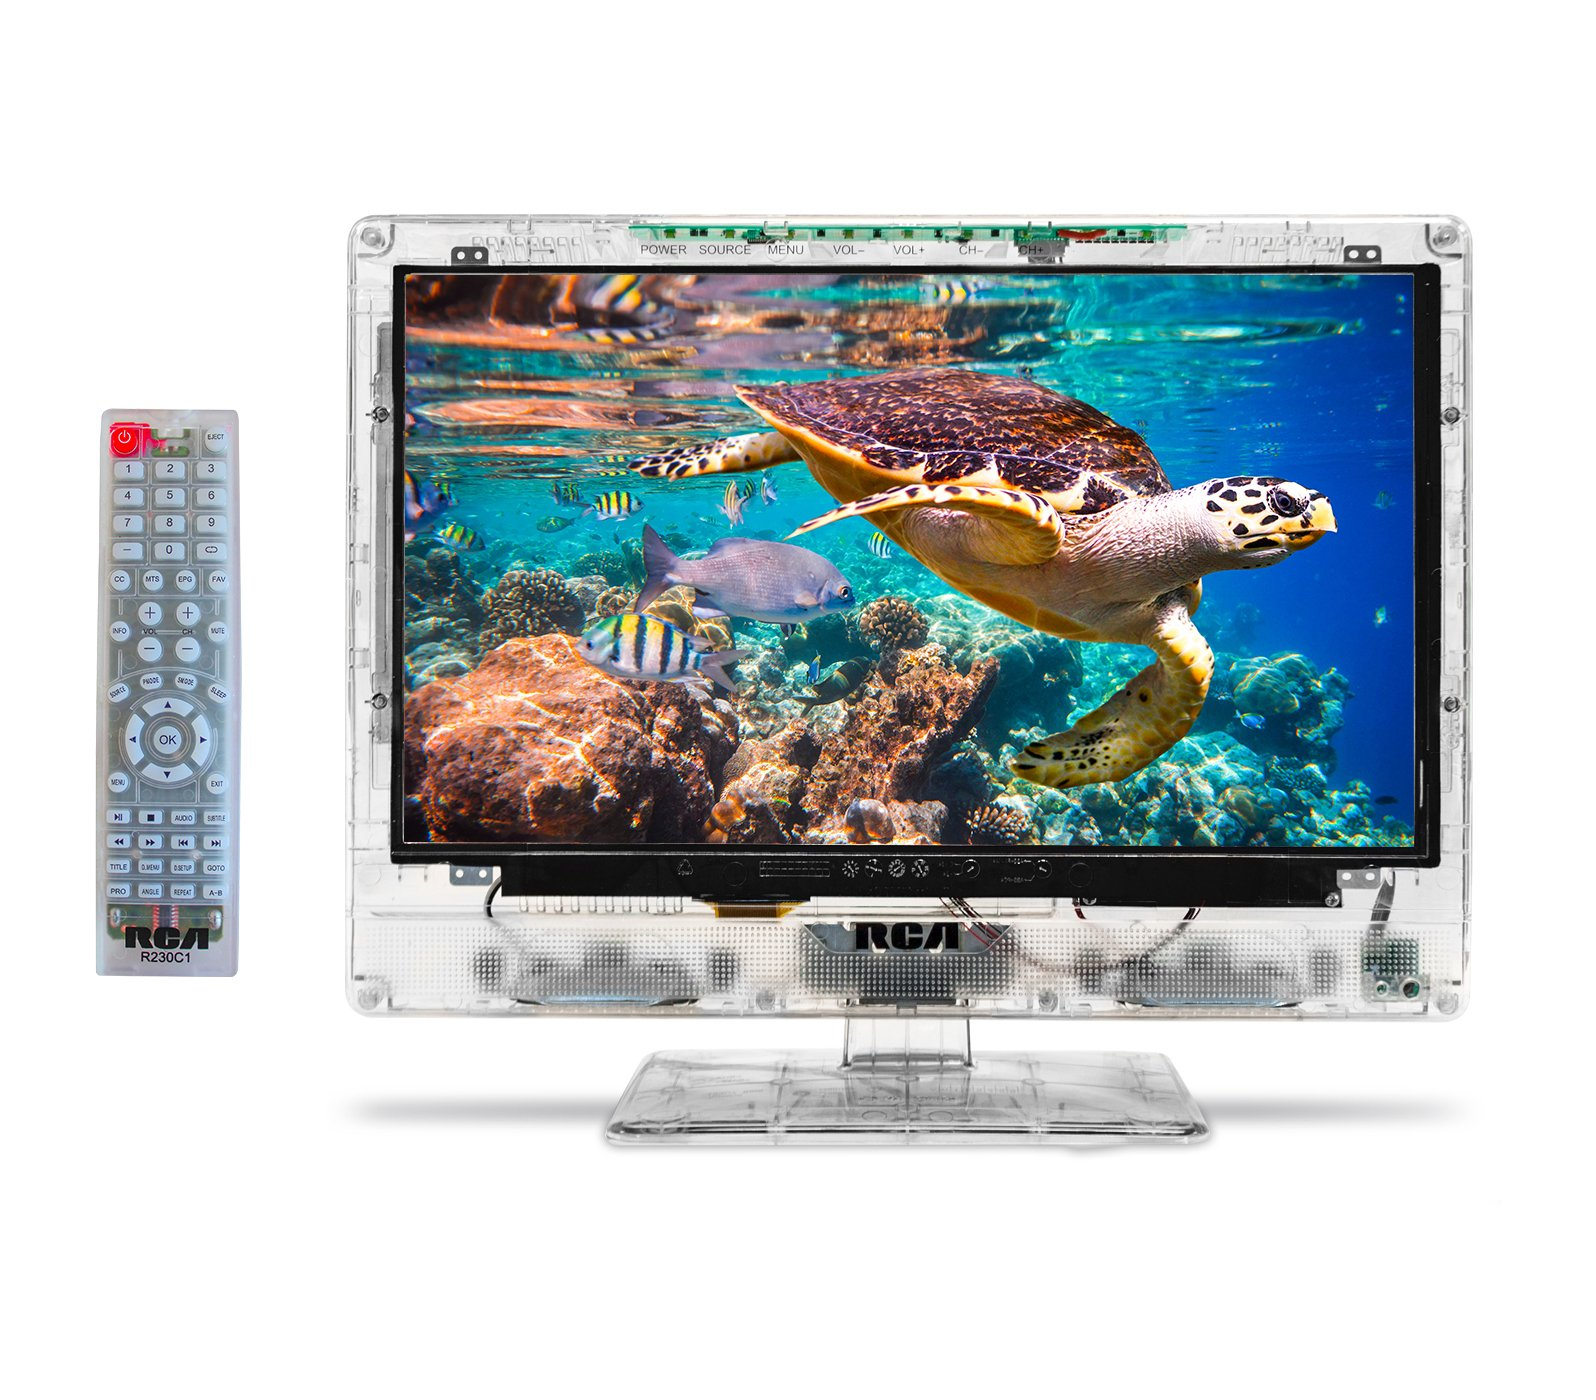 RCA 15'' Clearview HDTV   Transparent LED HD Television, High Resolution Wide Screen Monitor w/HDMI, VGA, RF Antenna Jack Inputs. Including Full Function Remote.